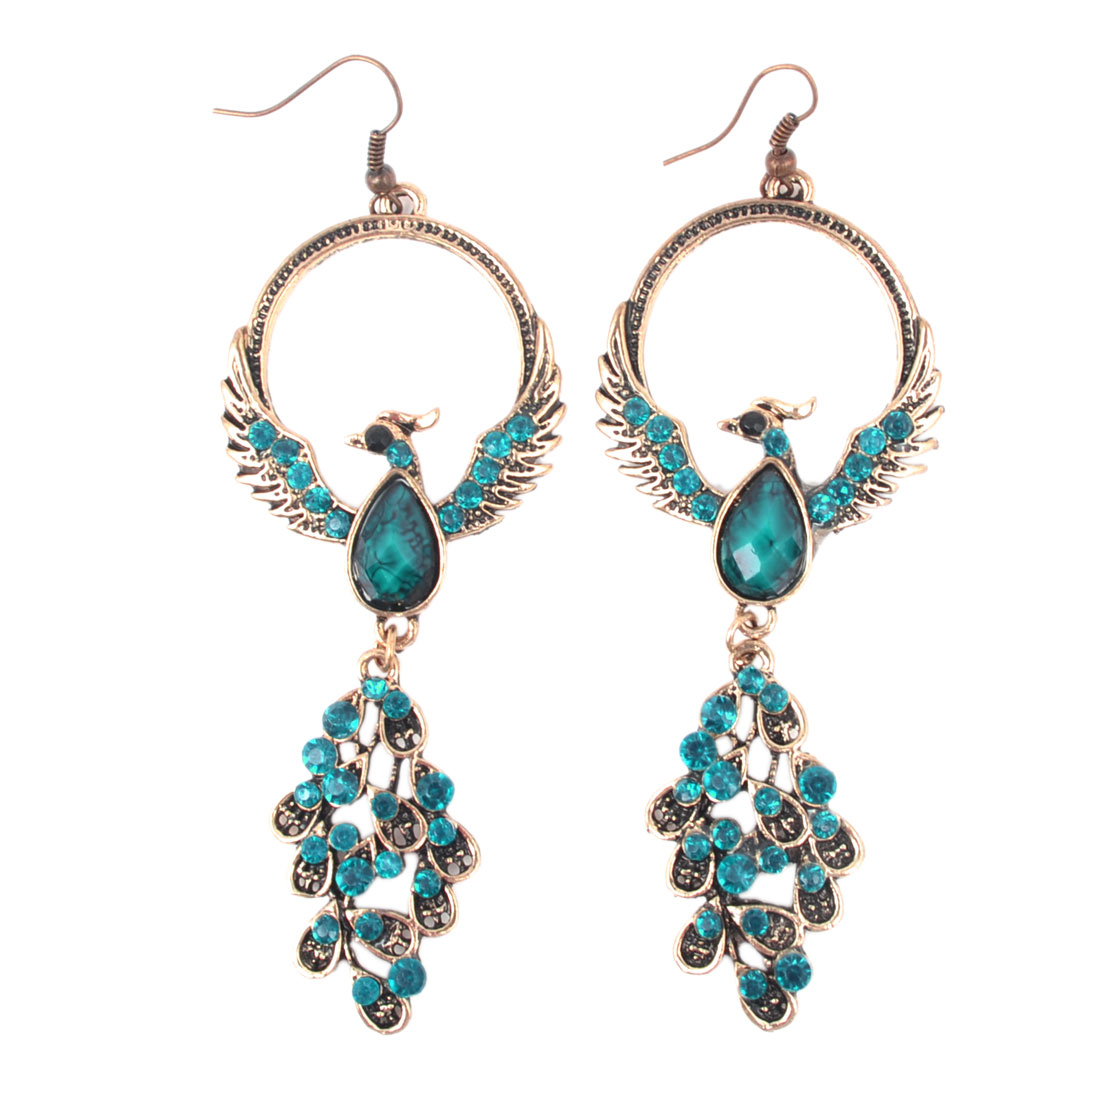 Women Teal Green Plastic Crystal Decor Phoenix Bird Dangling Hook Earrings Pair